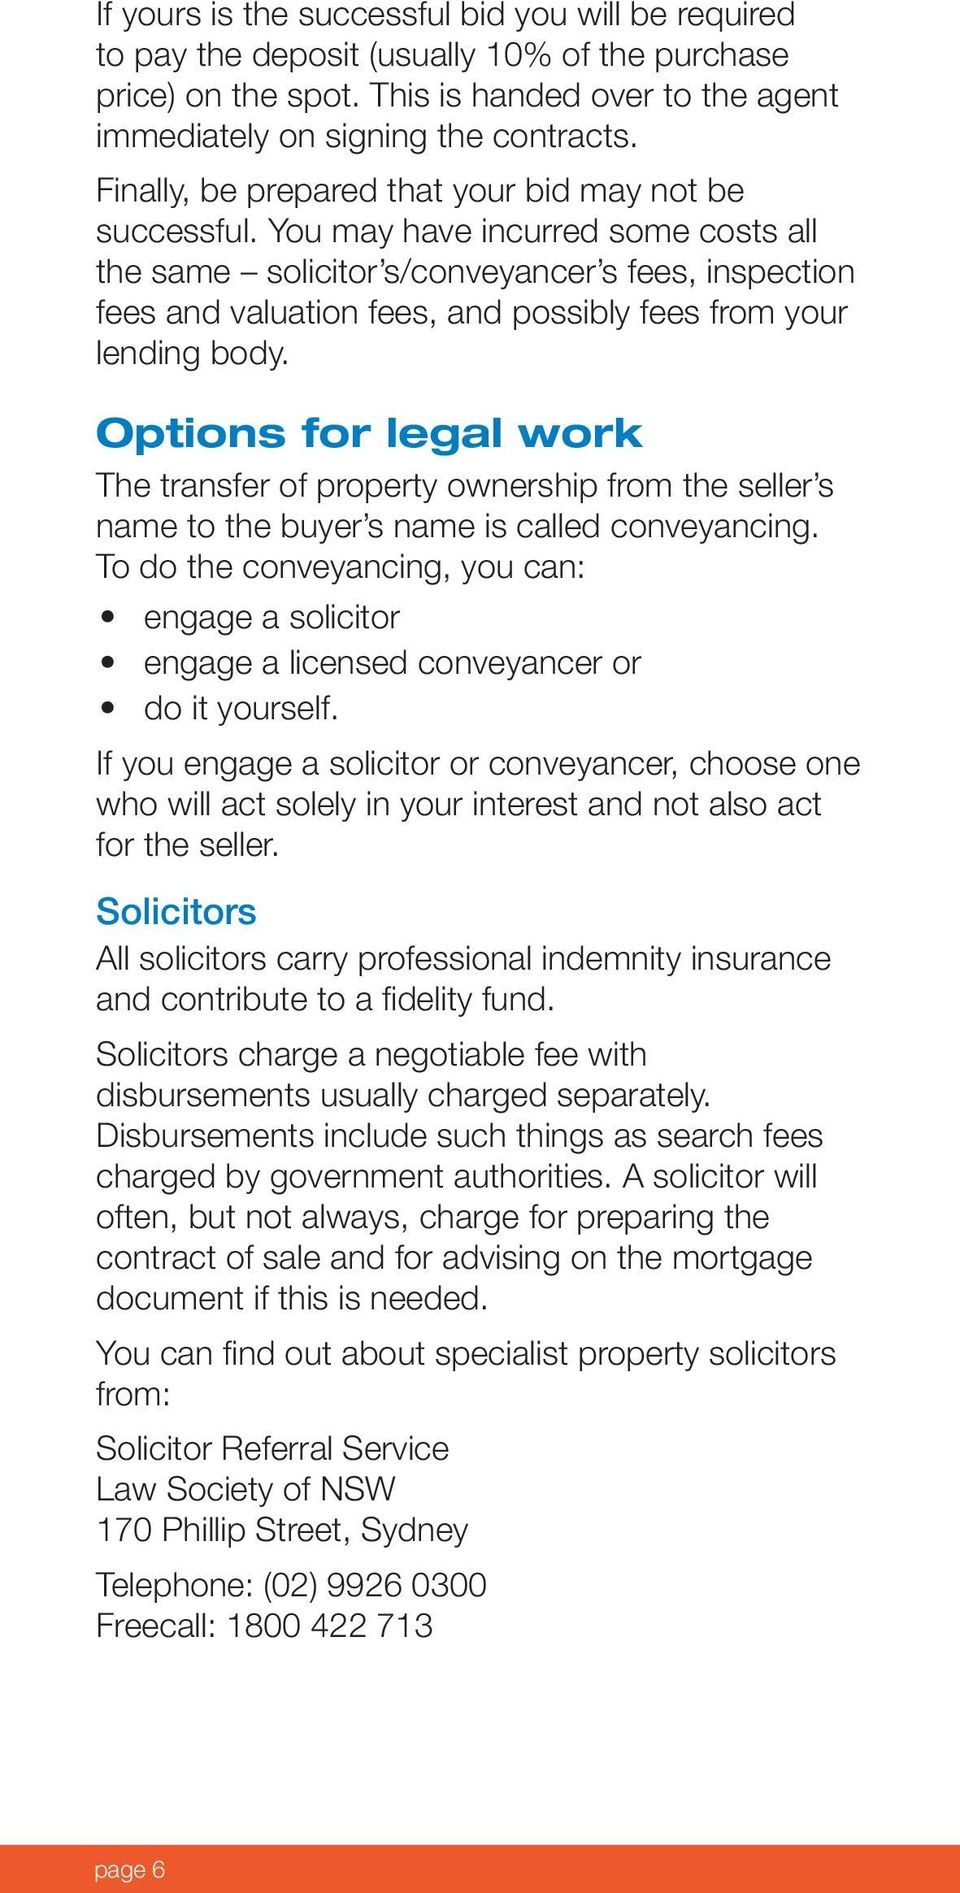 You may have incurred some costs all the same solicitor s/conveyancer s fees, inspection fees and valuation fees, and possibly fees from your lending body.